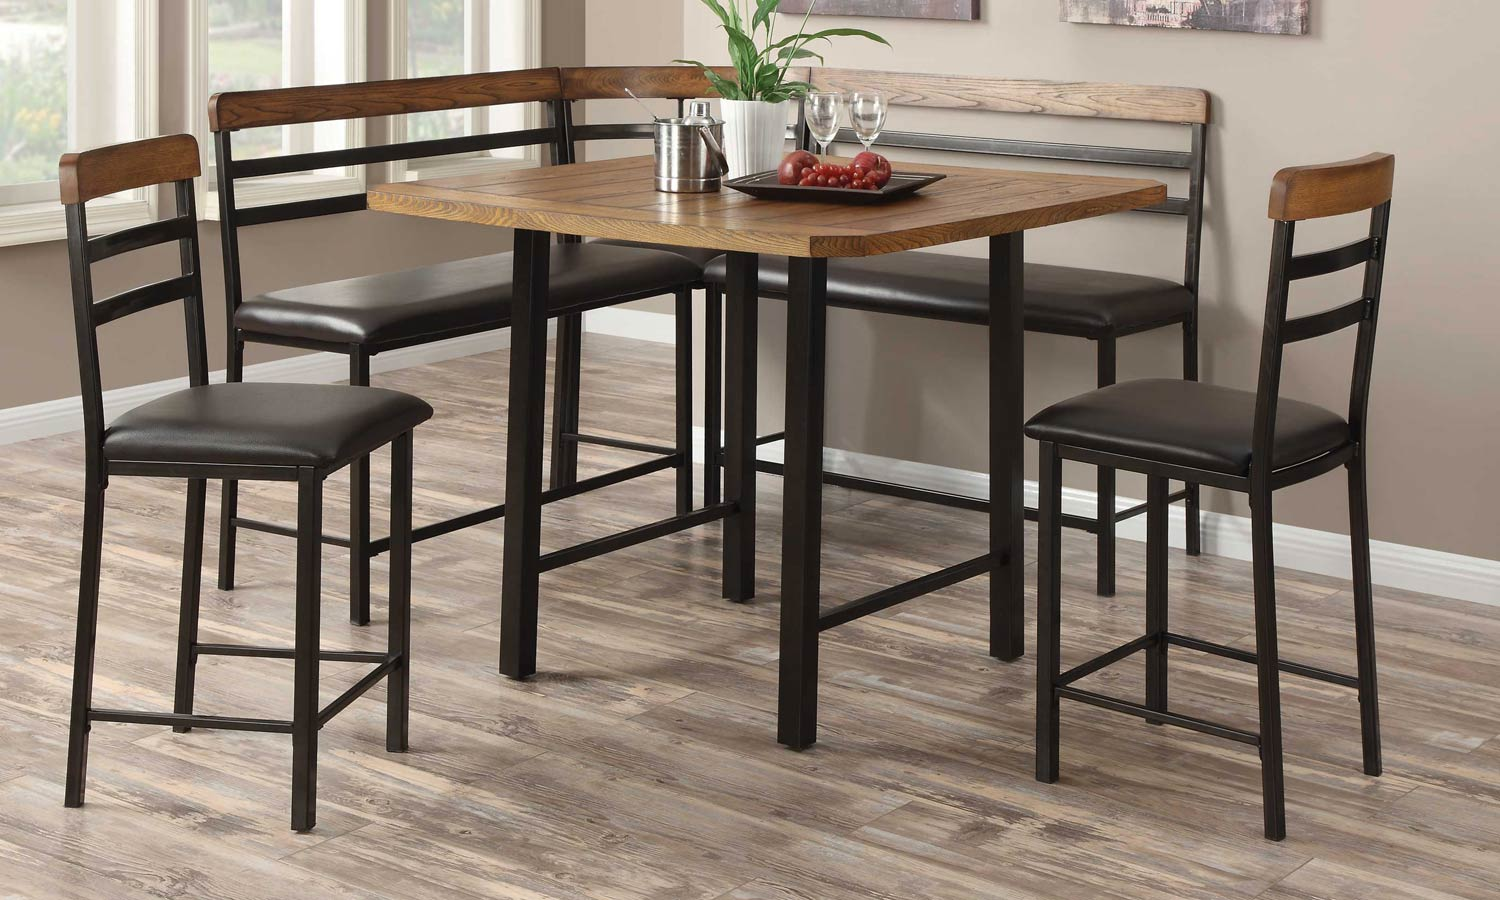 Coaster Sheldon Counter Height Dining Set - Oak/Black